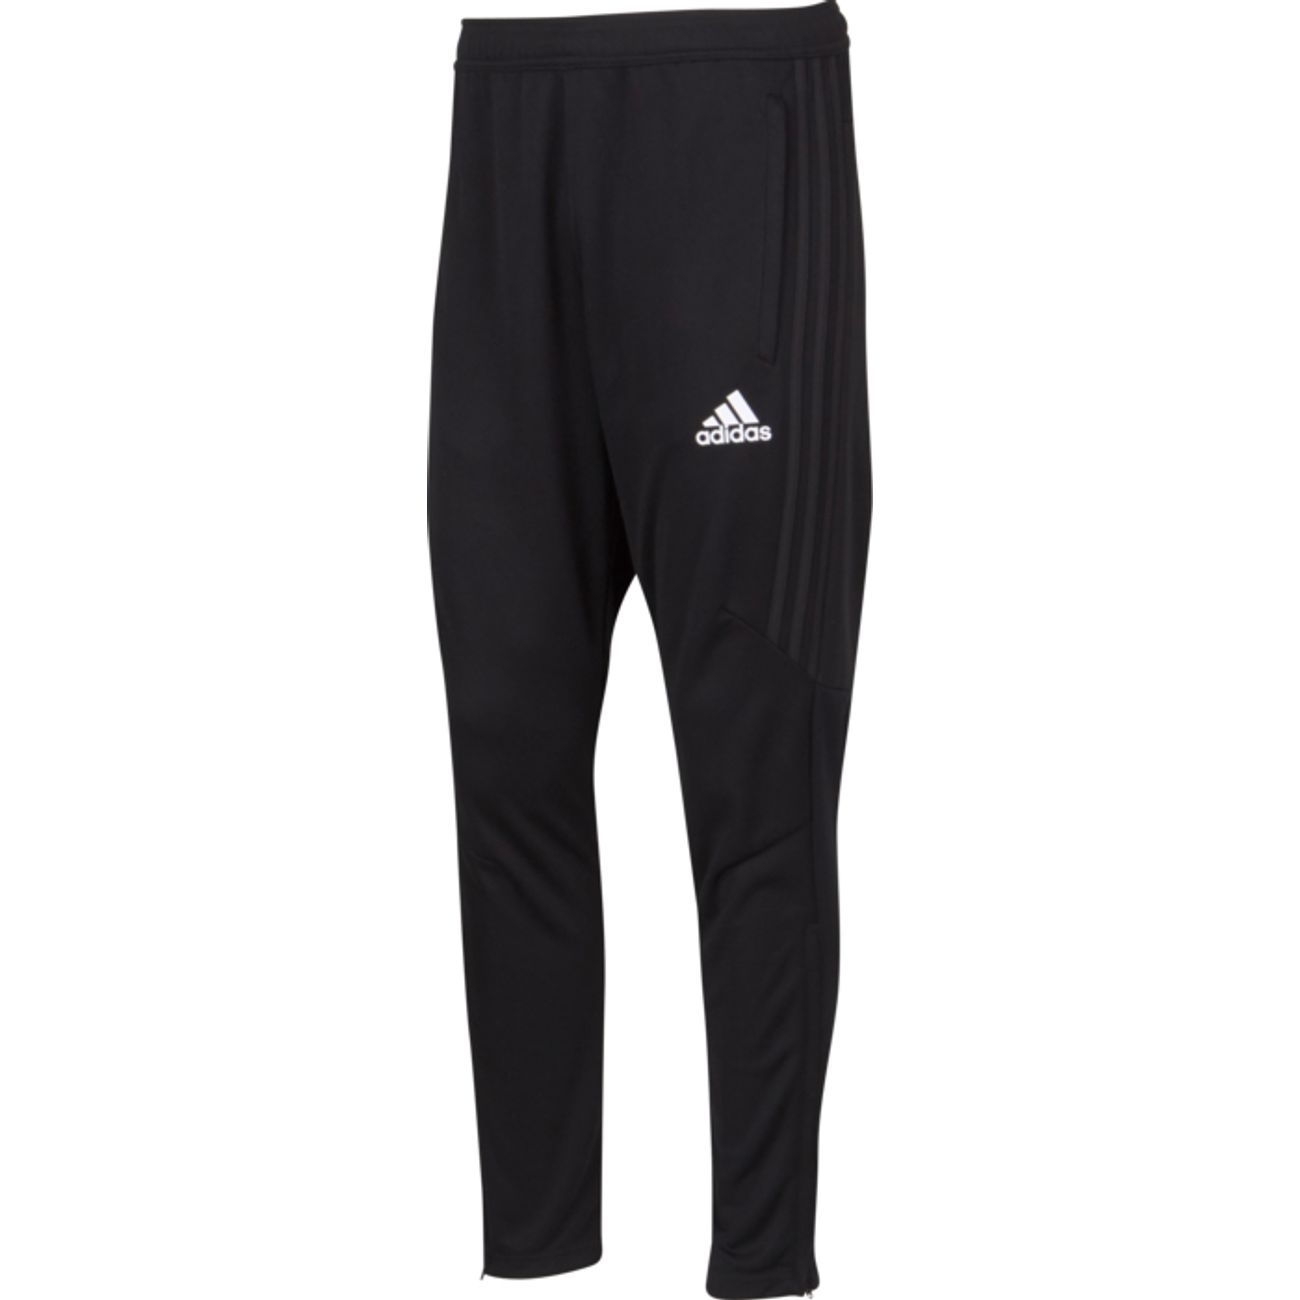 PANTALON  adulte ADIDAS TIiro17 Training Pant